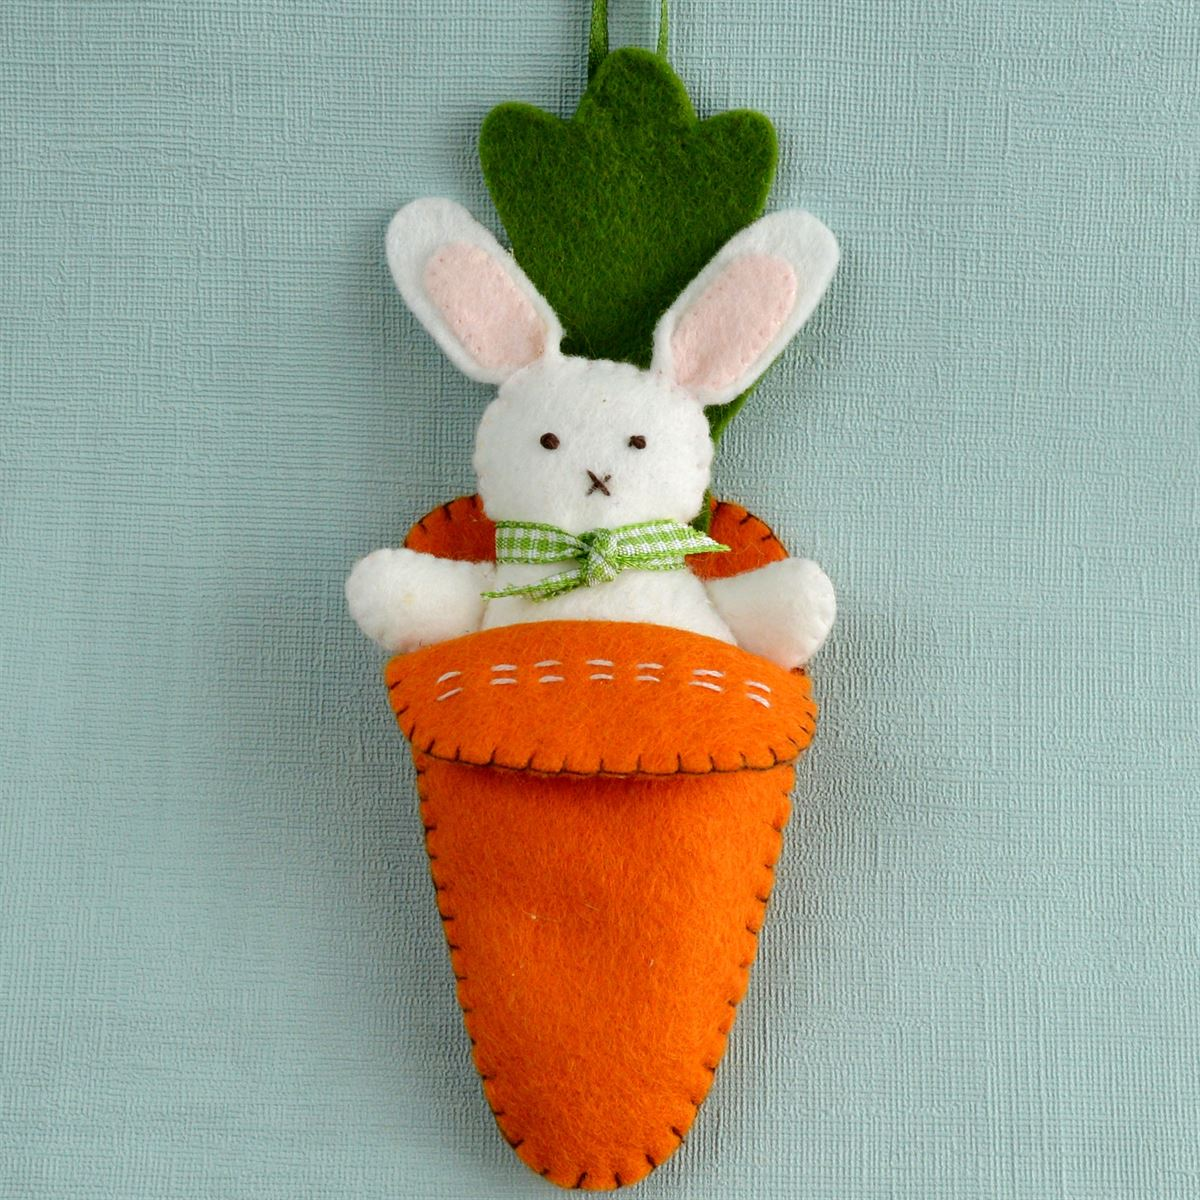 Bunny in Carrot Bed